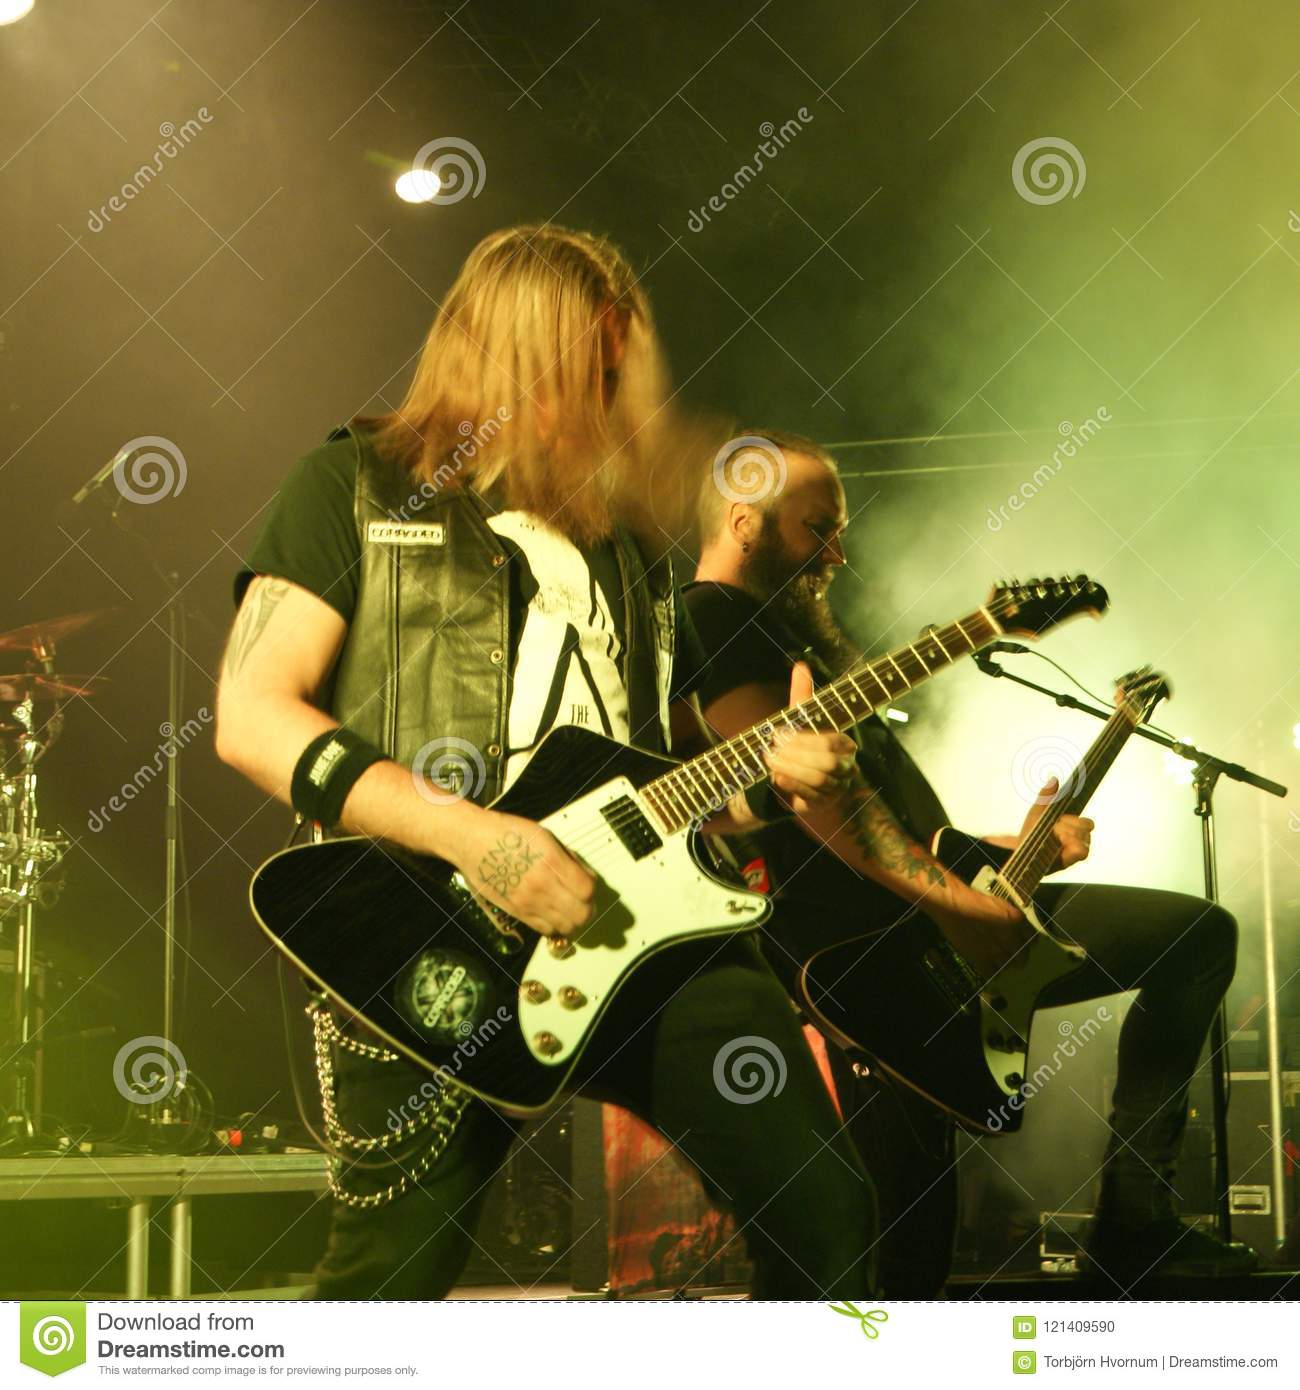 Corroded metal band from Sweden